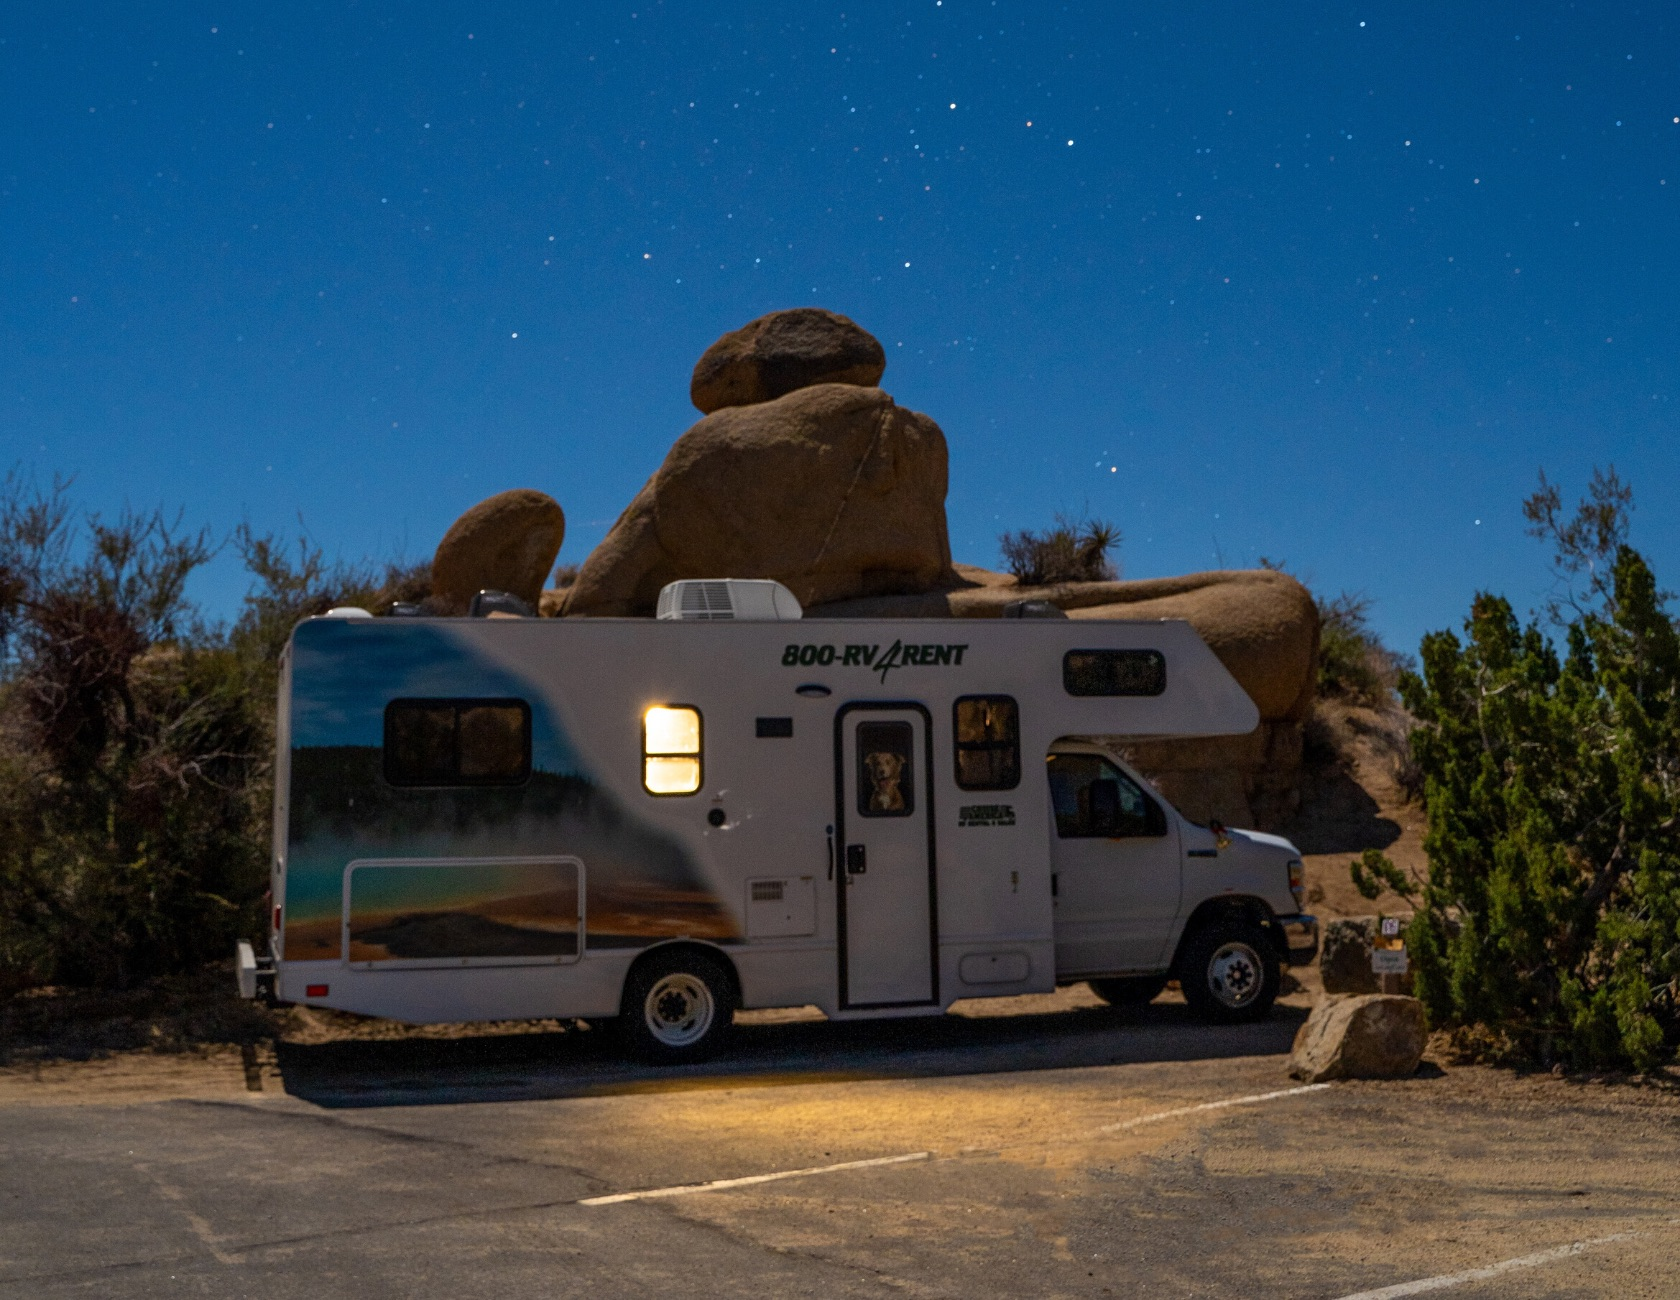 What-to-Know-When-Searching-For-Free-Overnight-RV-Parking.jpg